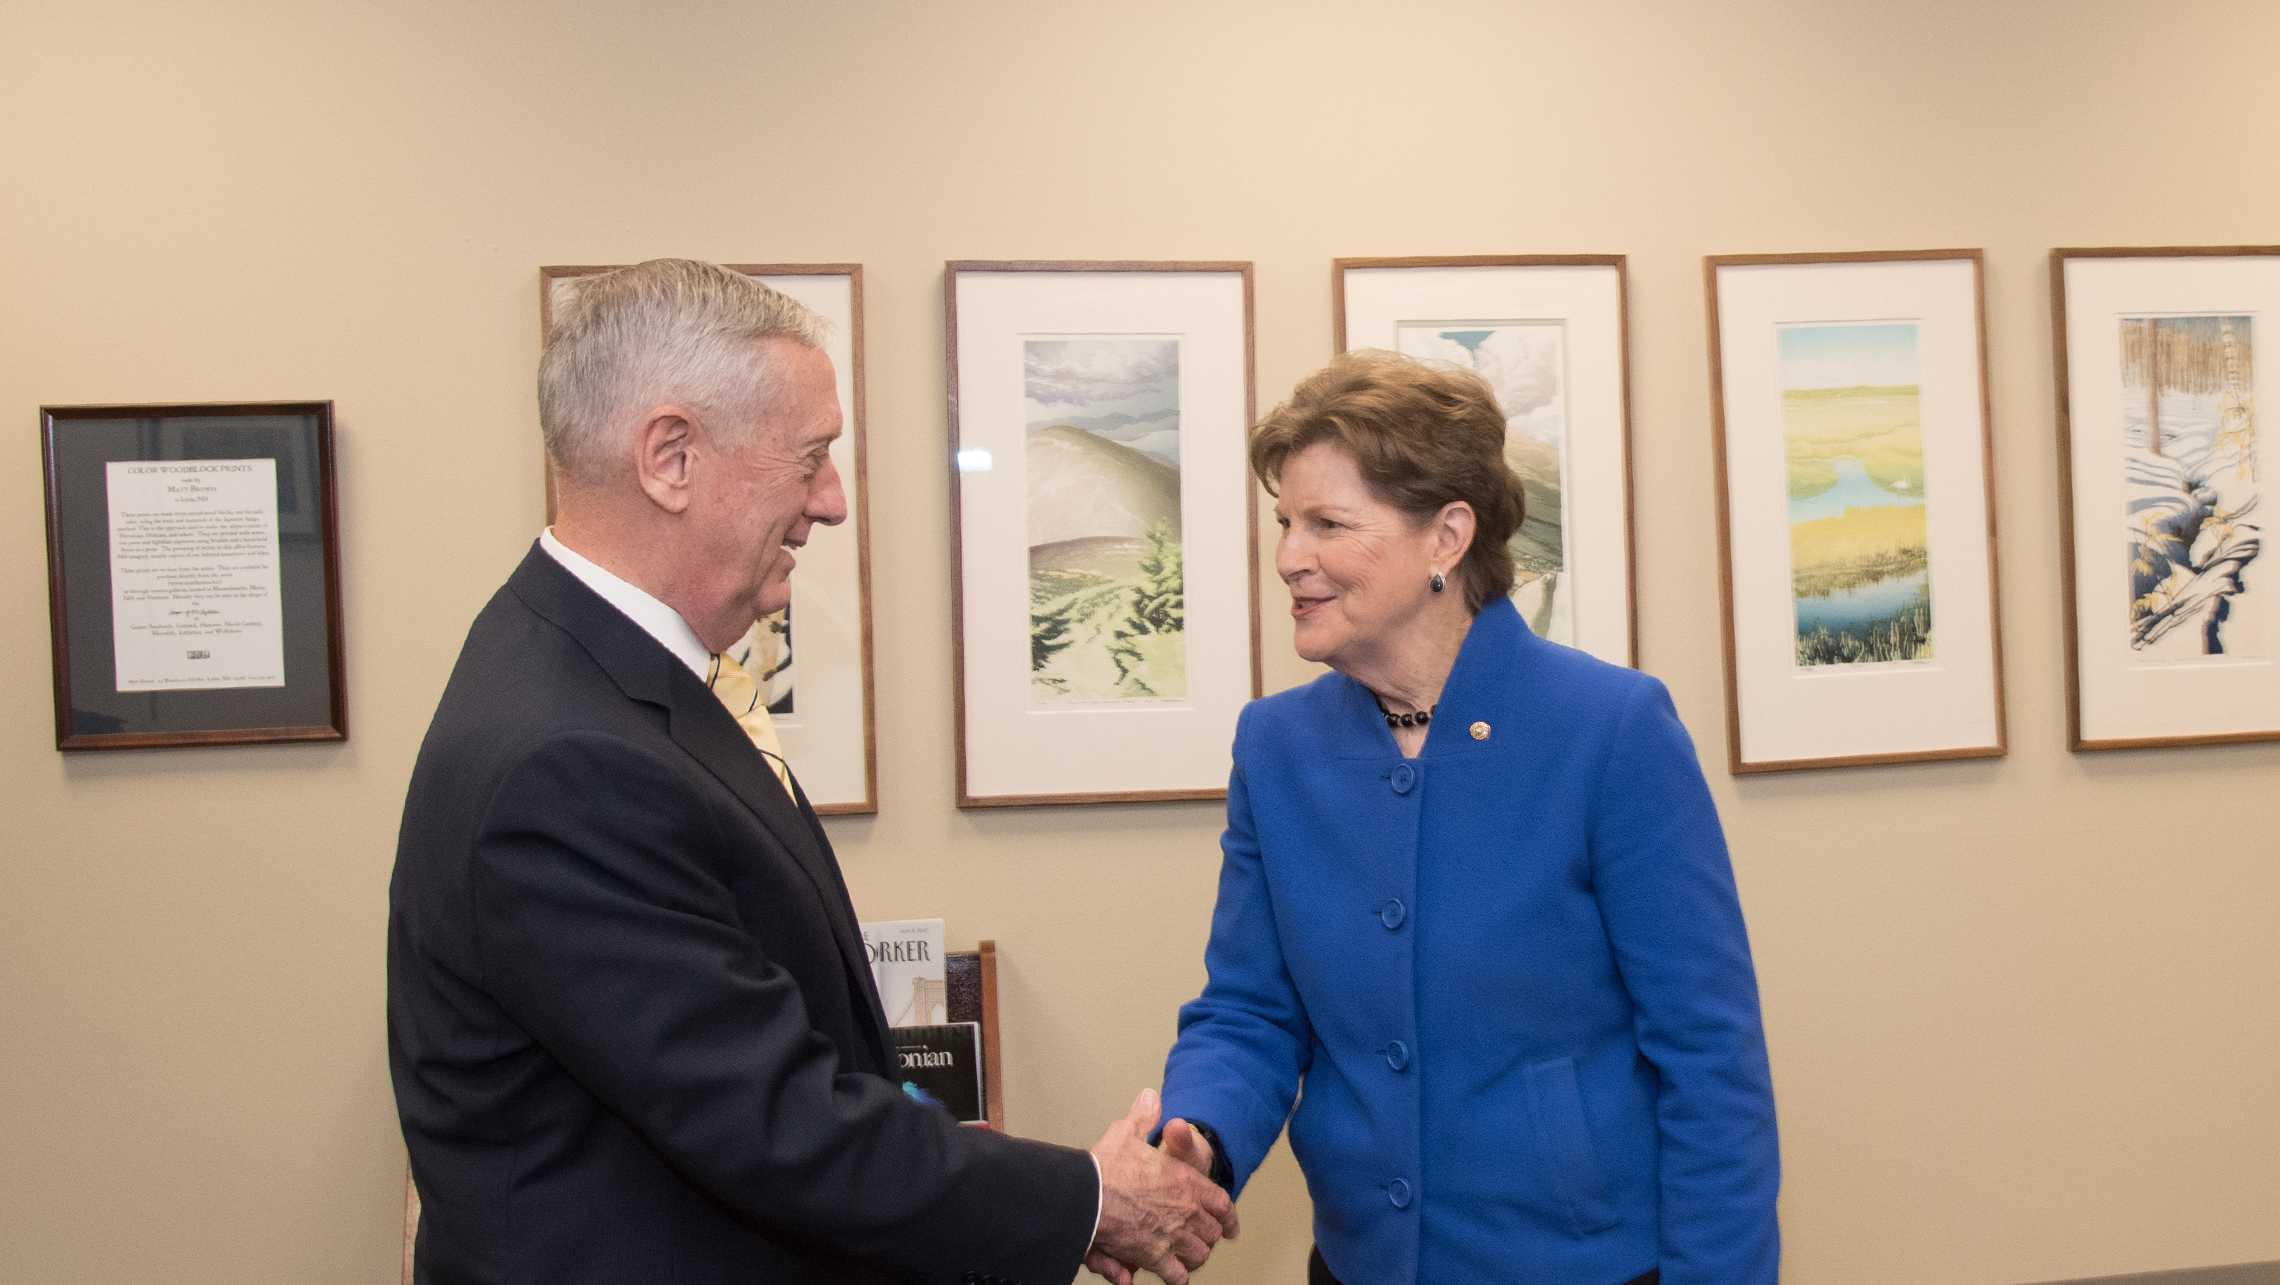 Sen. Jeanne Shaheen meets with Trump Secretary of Defense nominee Gen. James Mattis in her office on Wednesday.